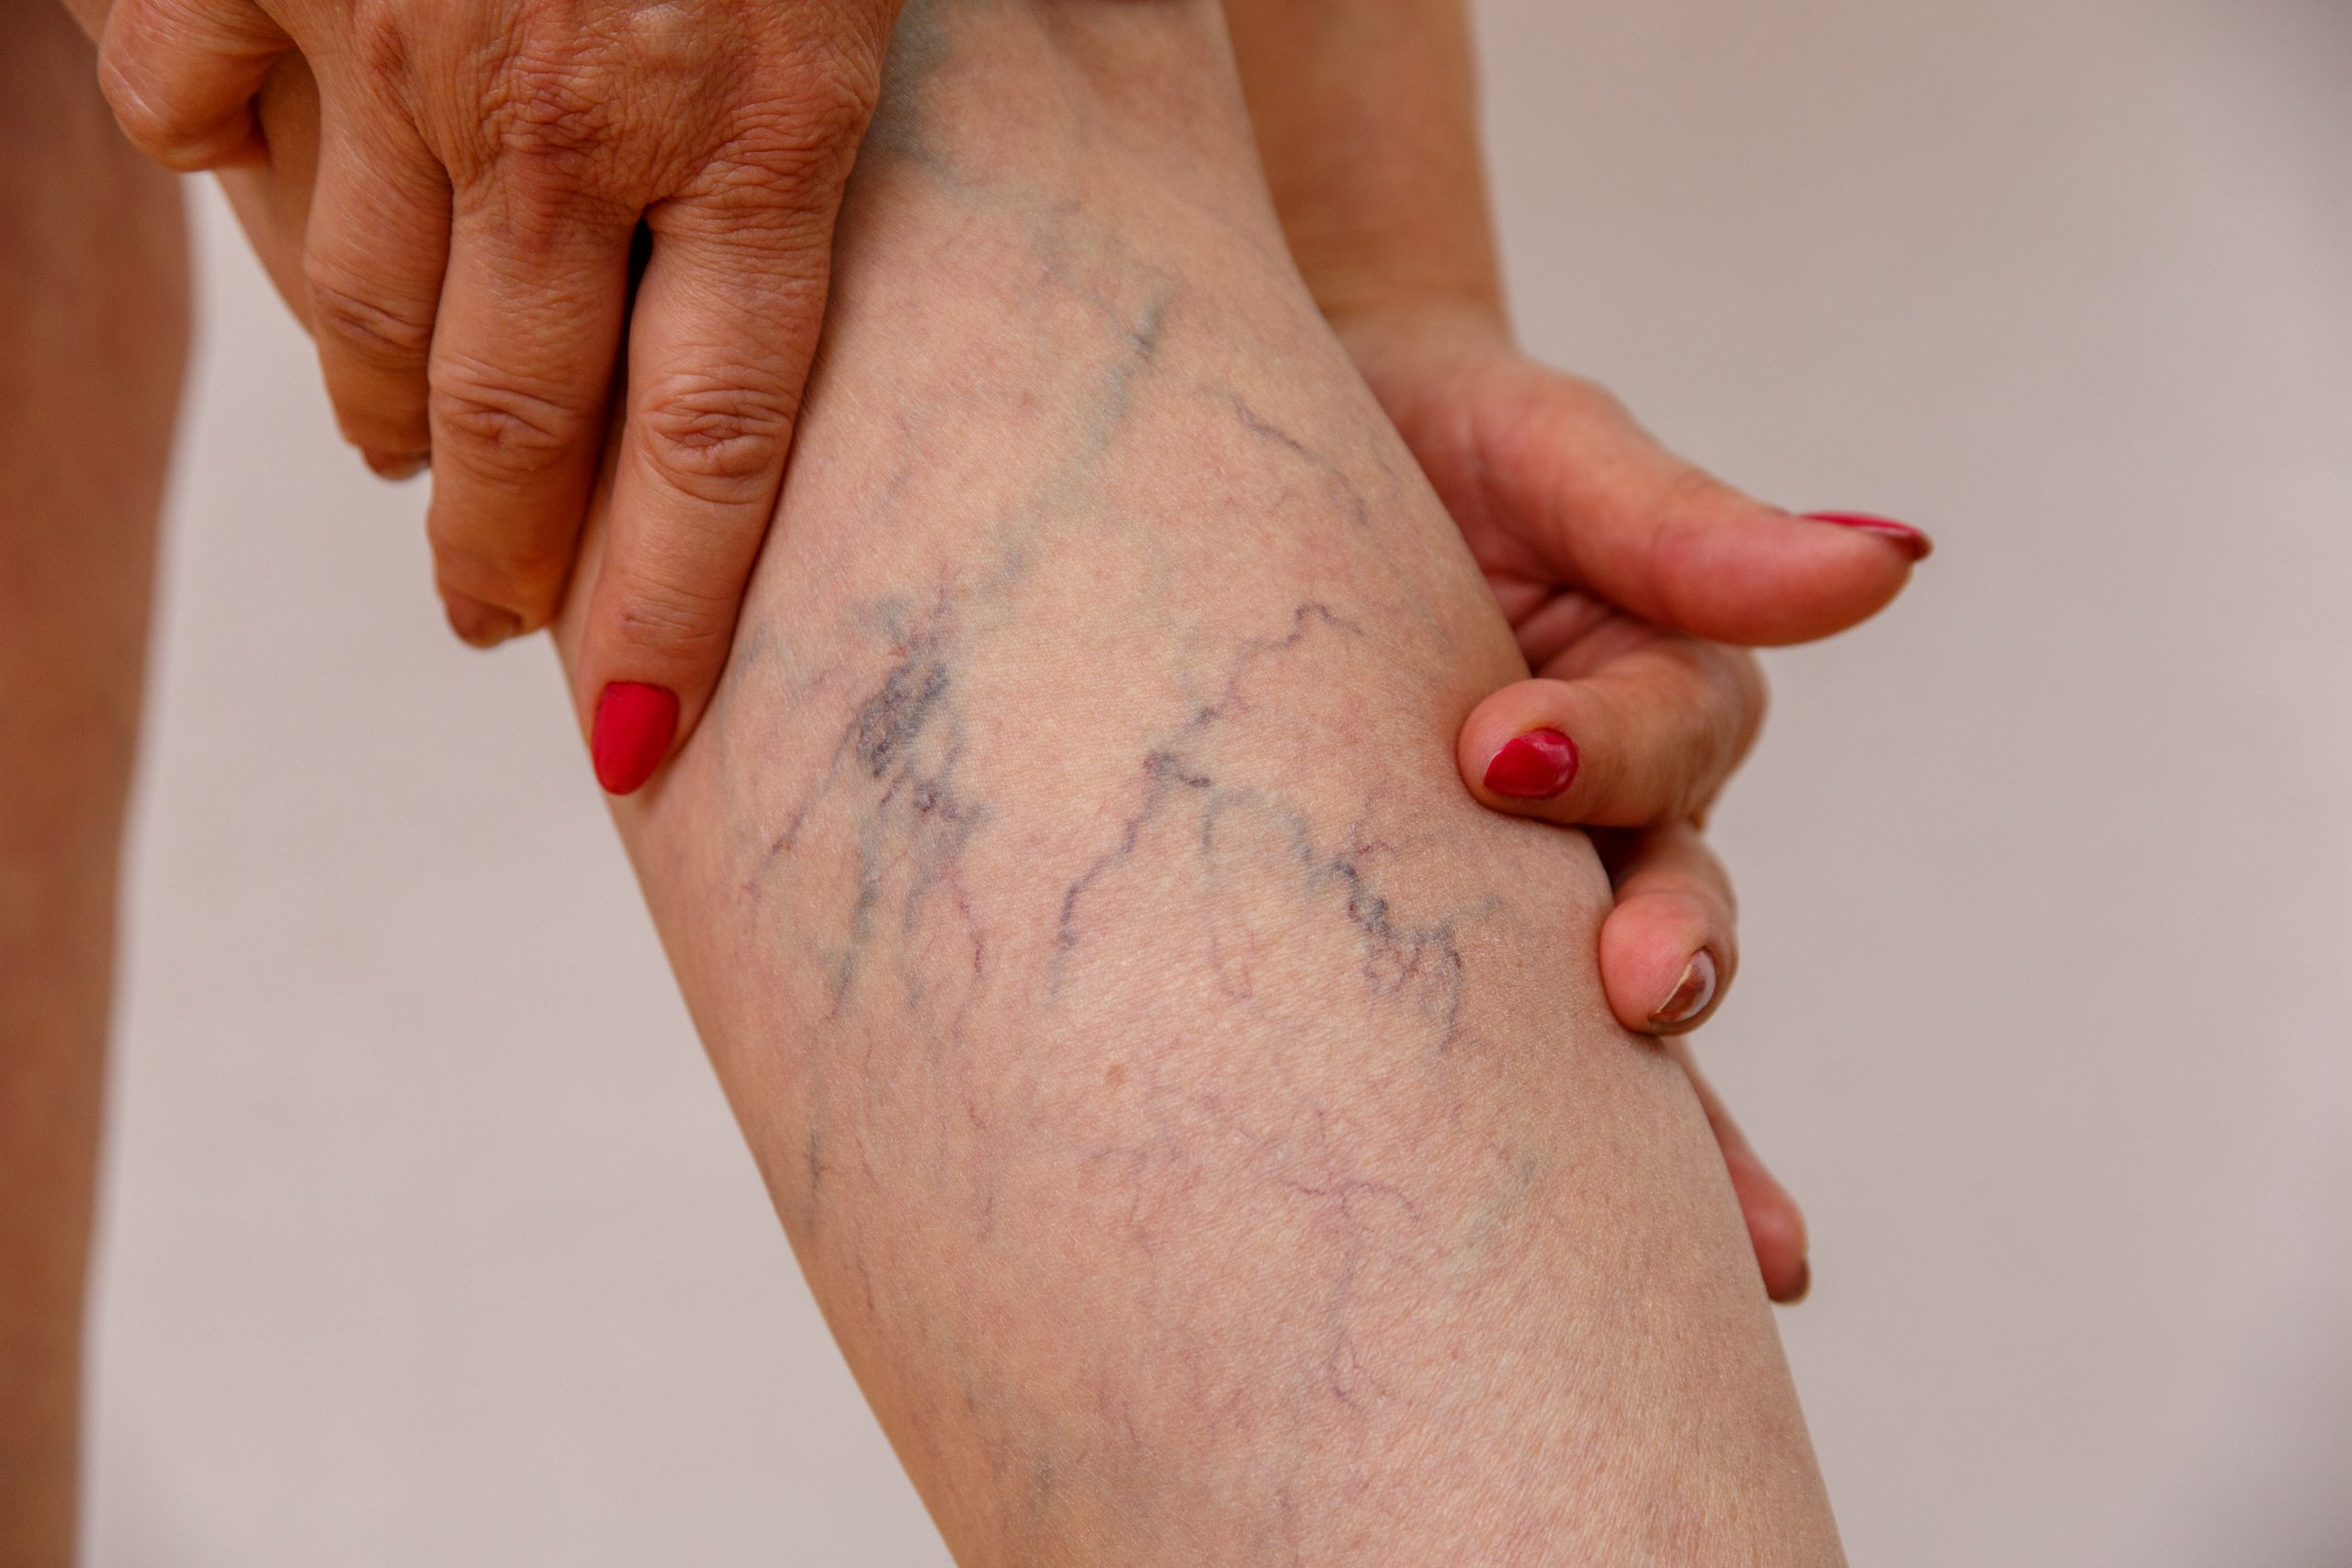 """Are you looking for the """"best spider vein treatment center near me in Long Island?"""" In this article, we describe how to find the best vein clinics and vein specialists in LI."""